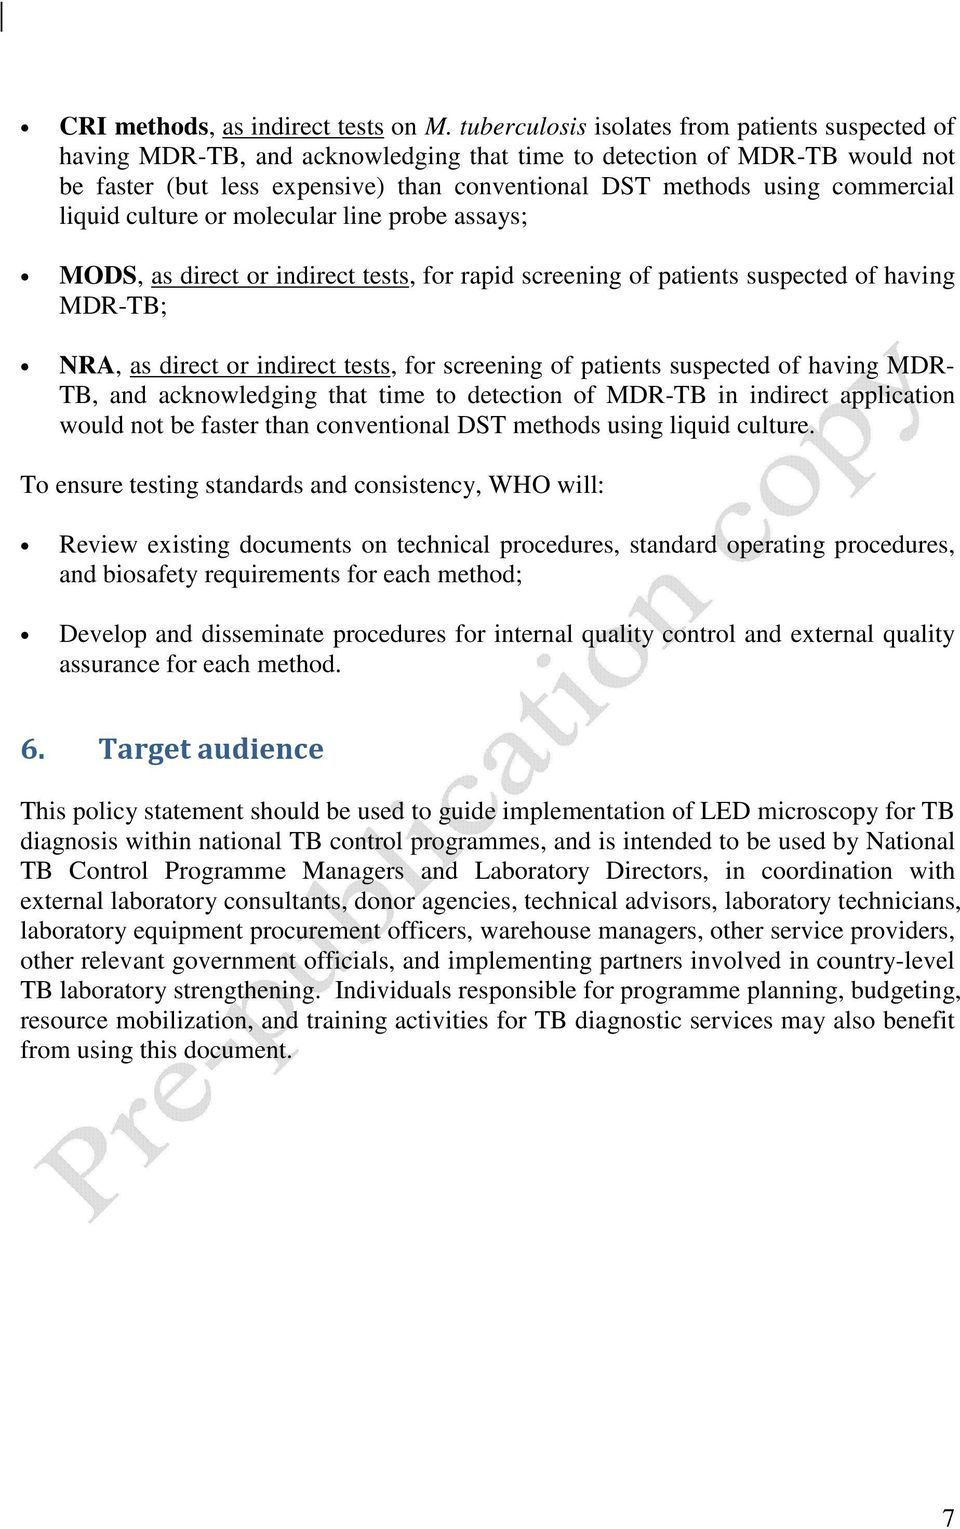 commercial liquid culture or molecular line probe assays; MODS, as direct or indirect tests, for rapid screening of patients suspected of having MDR-TB; NRA, as direct or indirect tests, for